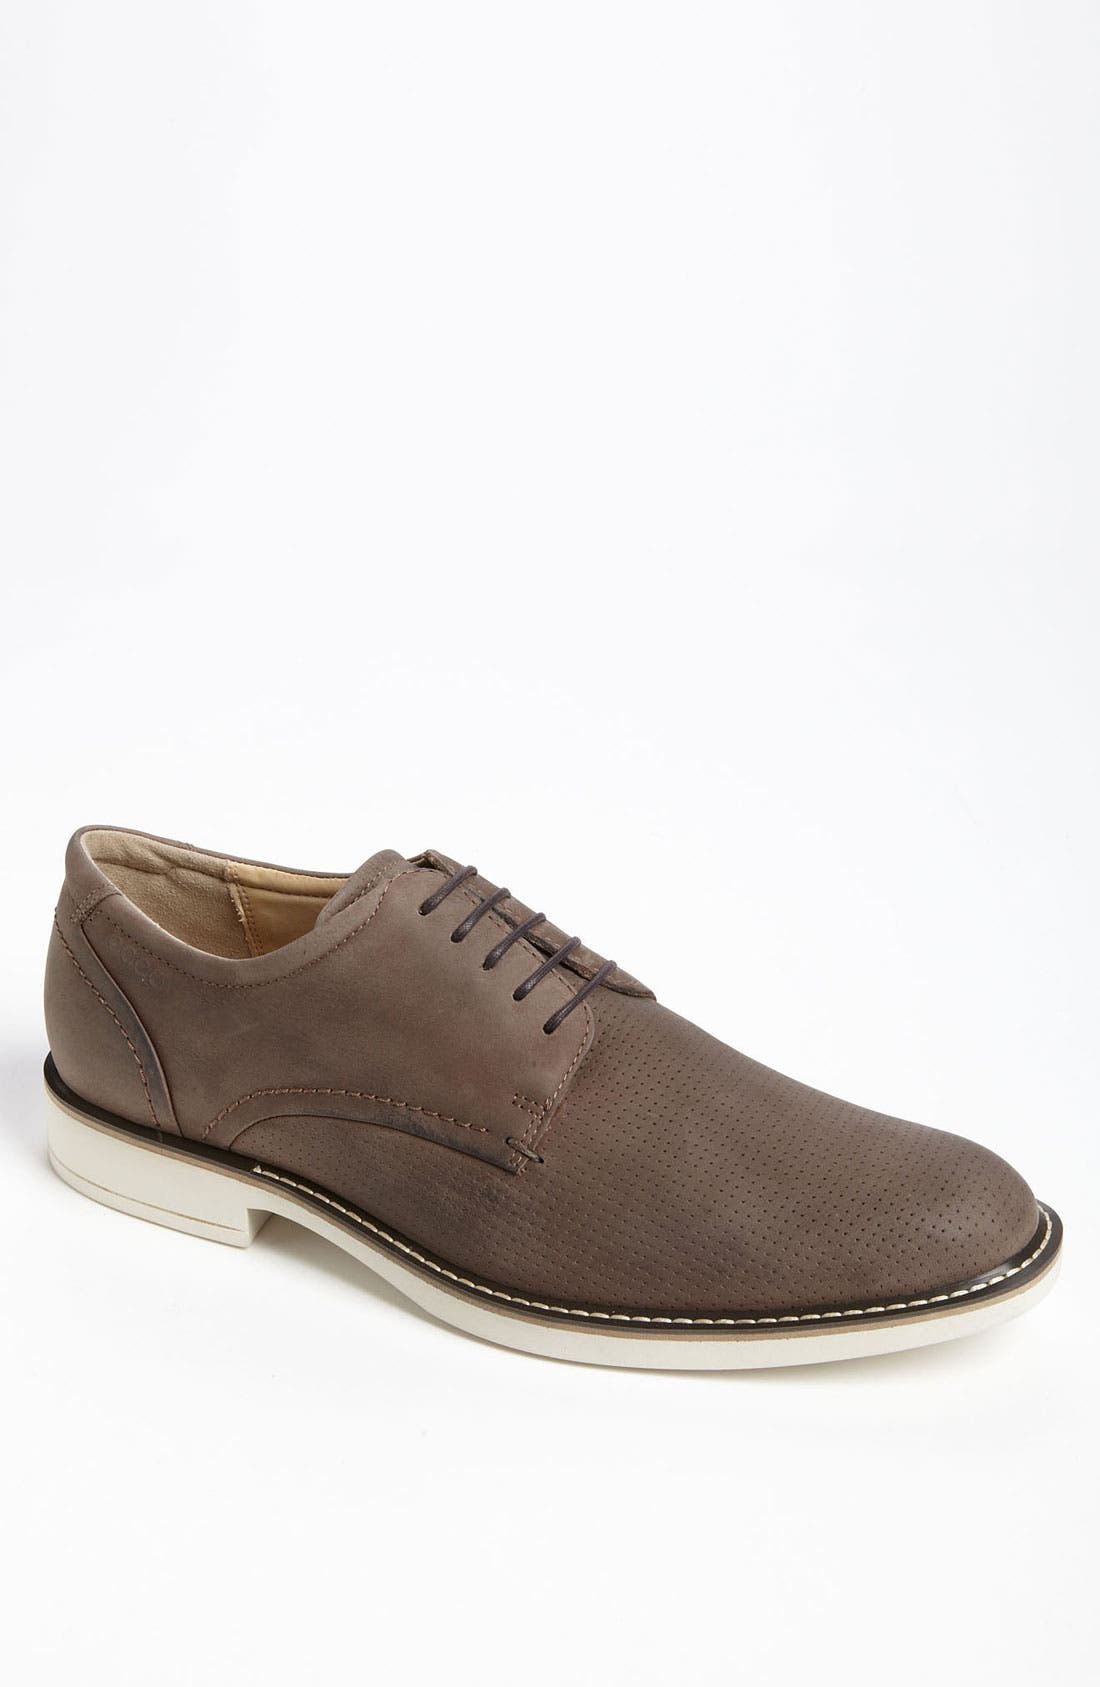 Main Image - ECCO 'Biarritz' Perforated Oxford